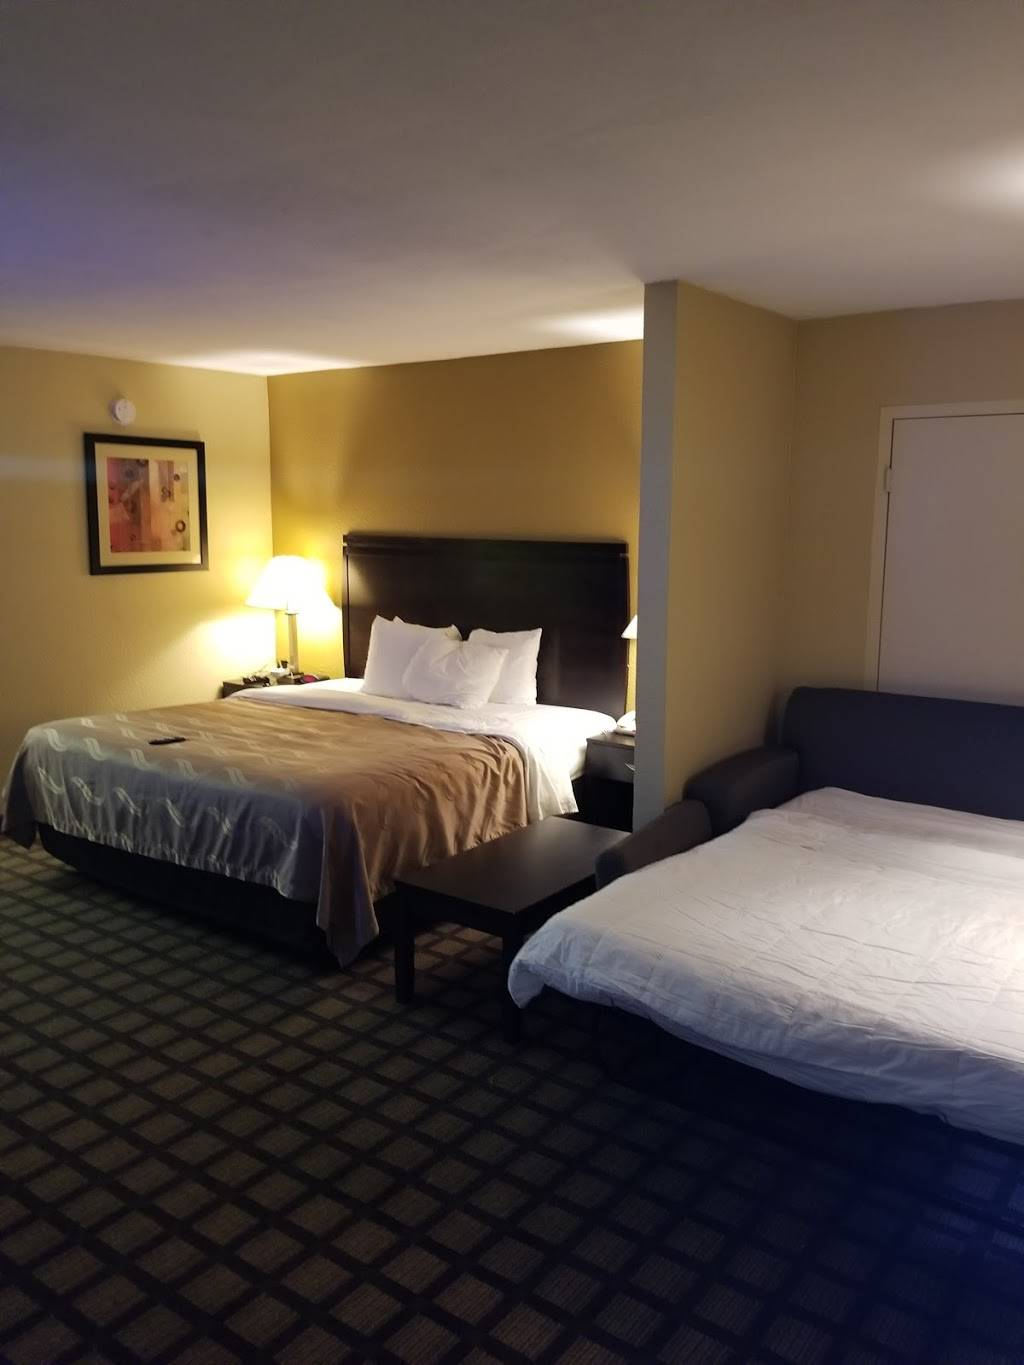 Quality Inn & Suites Baton Rouge West - Port Allen - lodging  | Photo 2 of 9 | Address: 131 N Lobdell Hwy, Port Allen, LA 70767, USA | Phone: (225) 343-4821